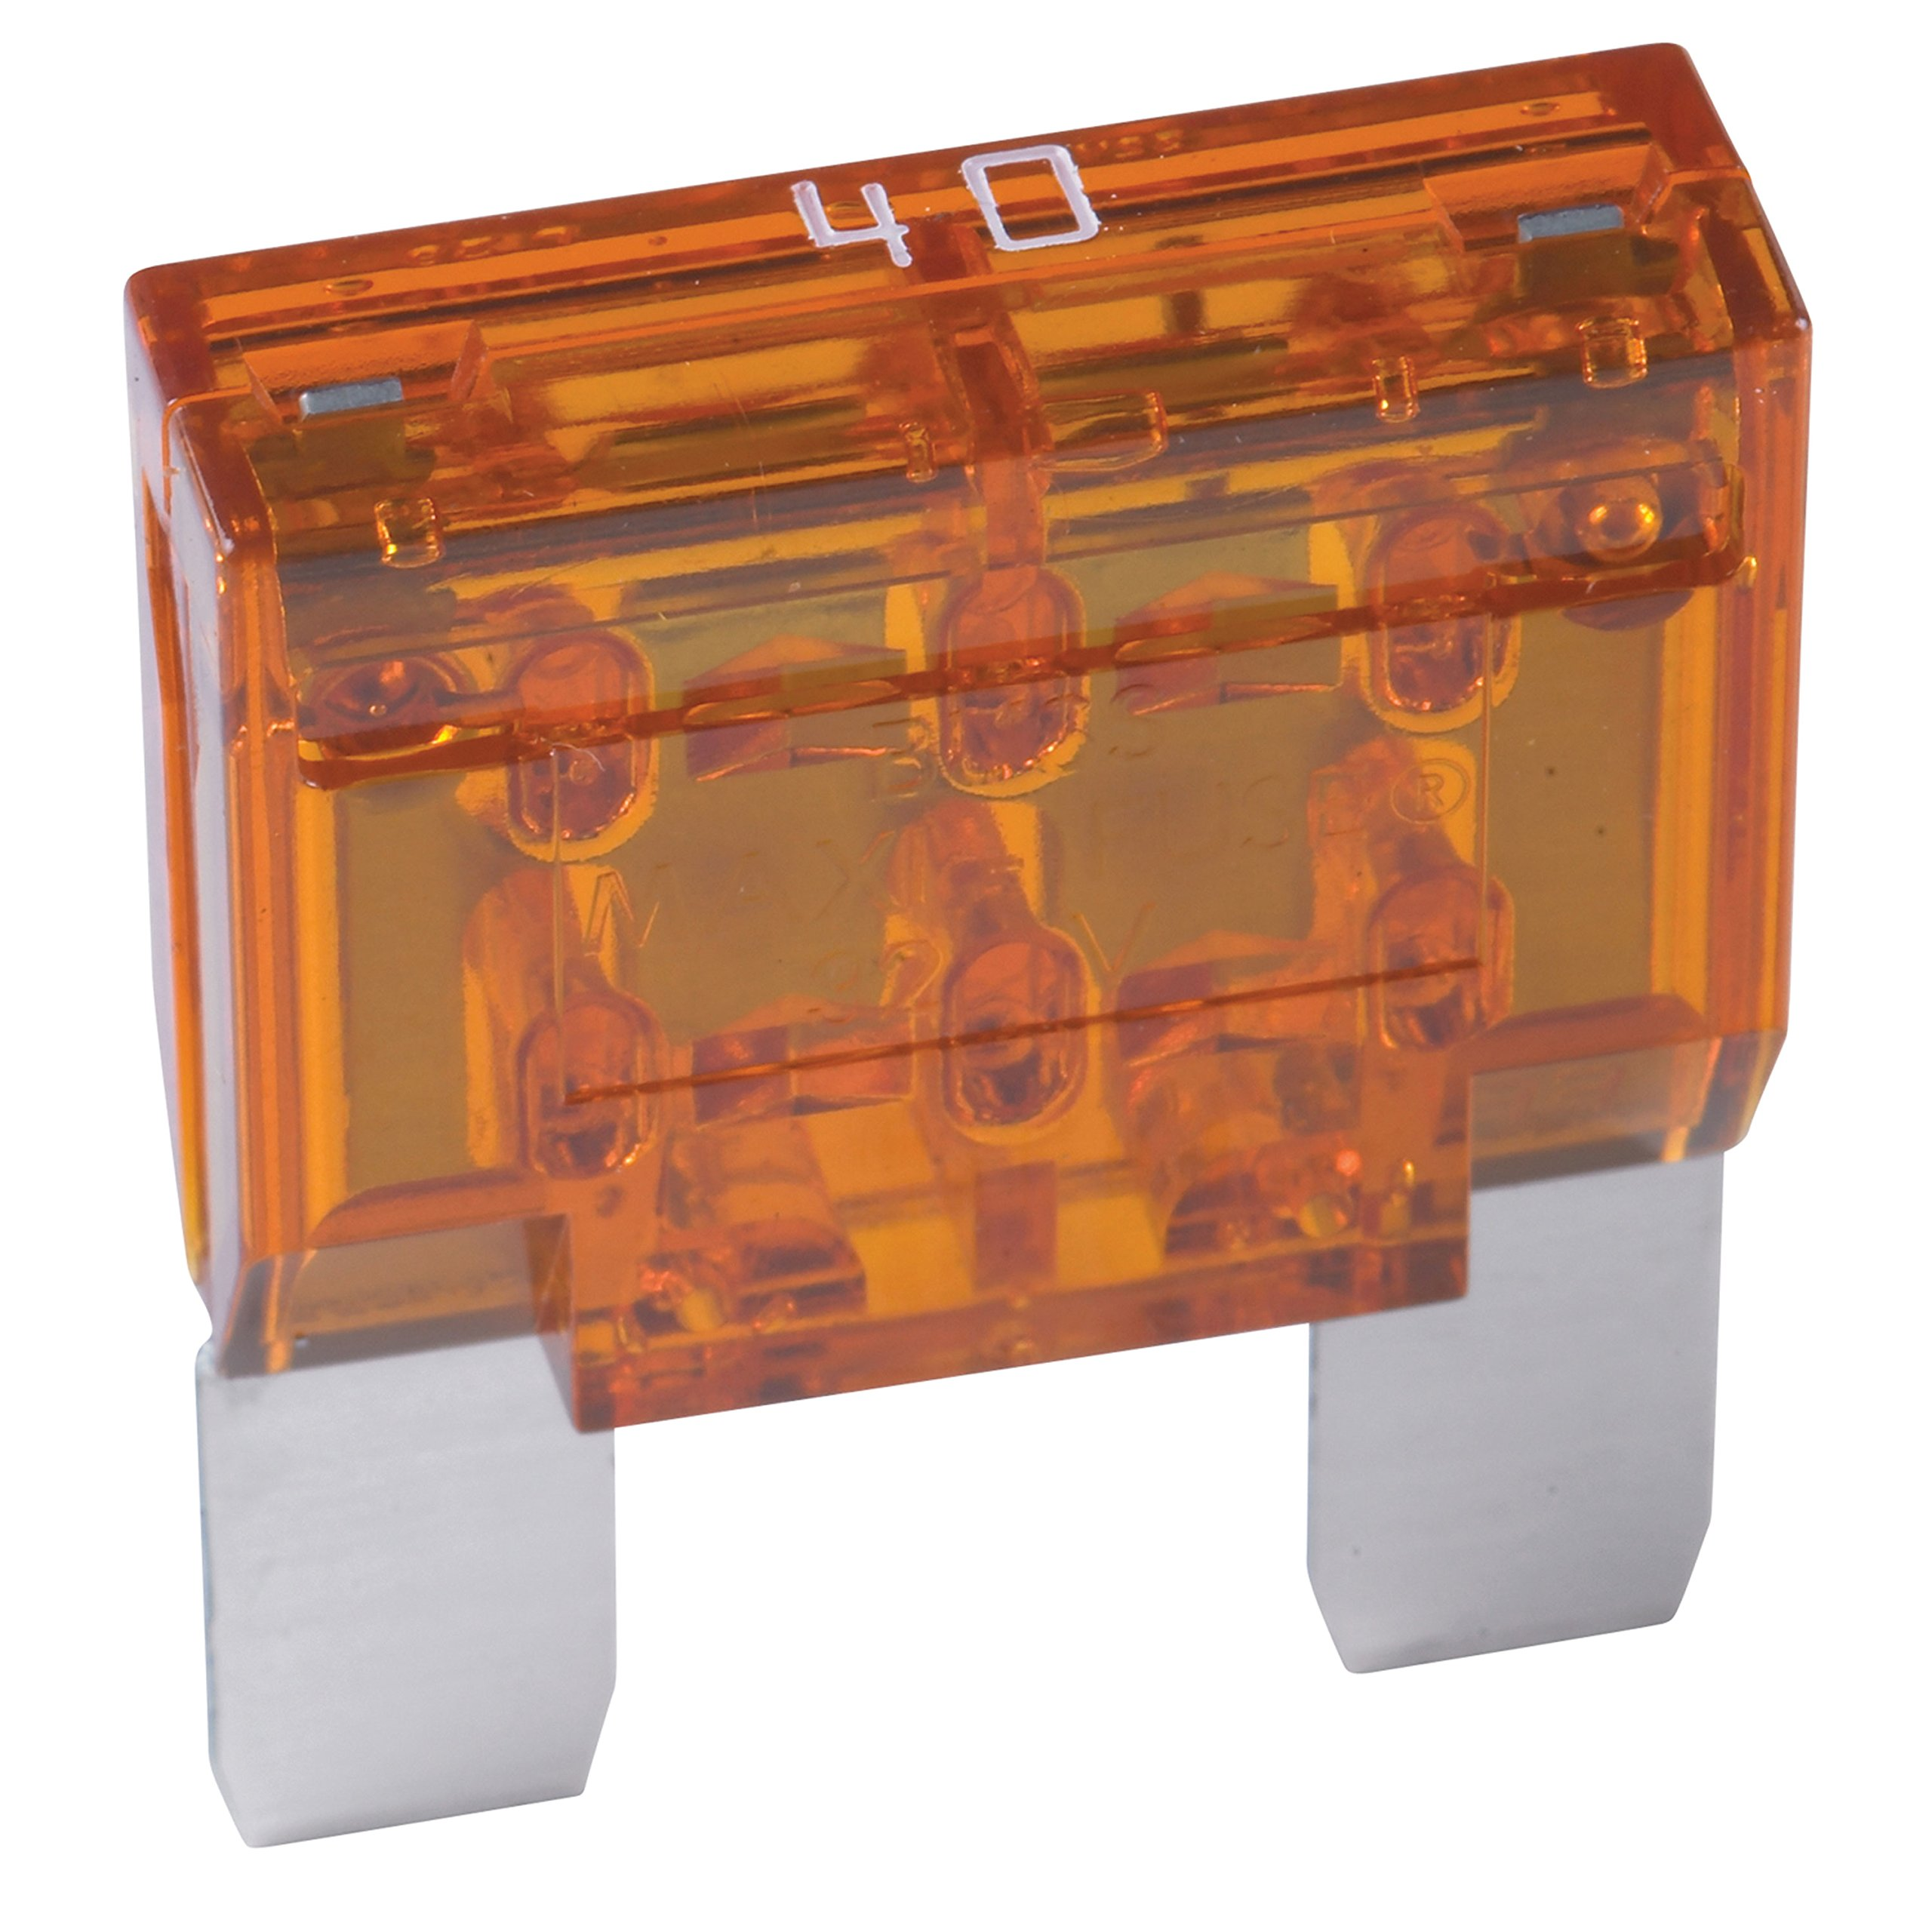 Best Rated In Fuse Blocks Helpful Customer Reviews Maxi Box Bussmann Max40 Product Image